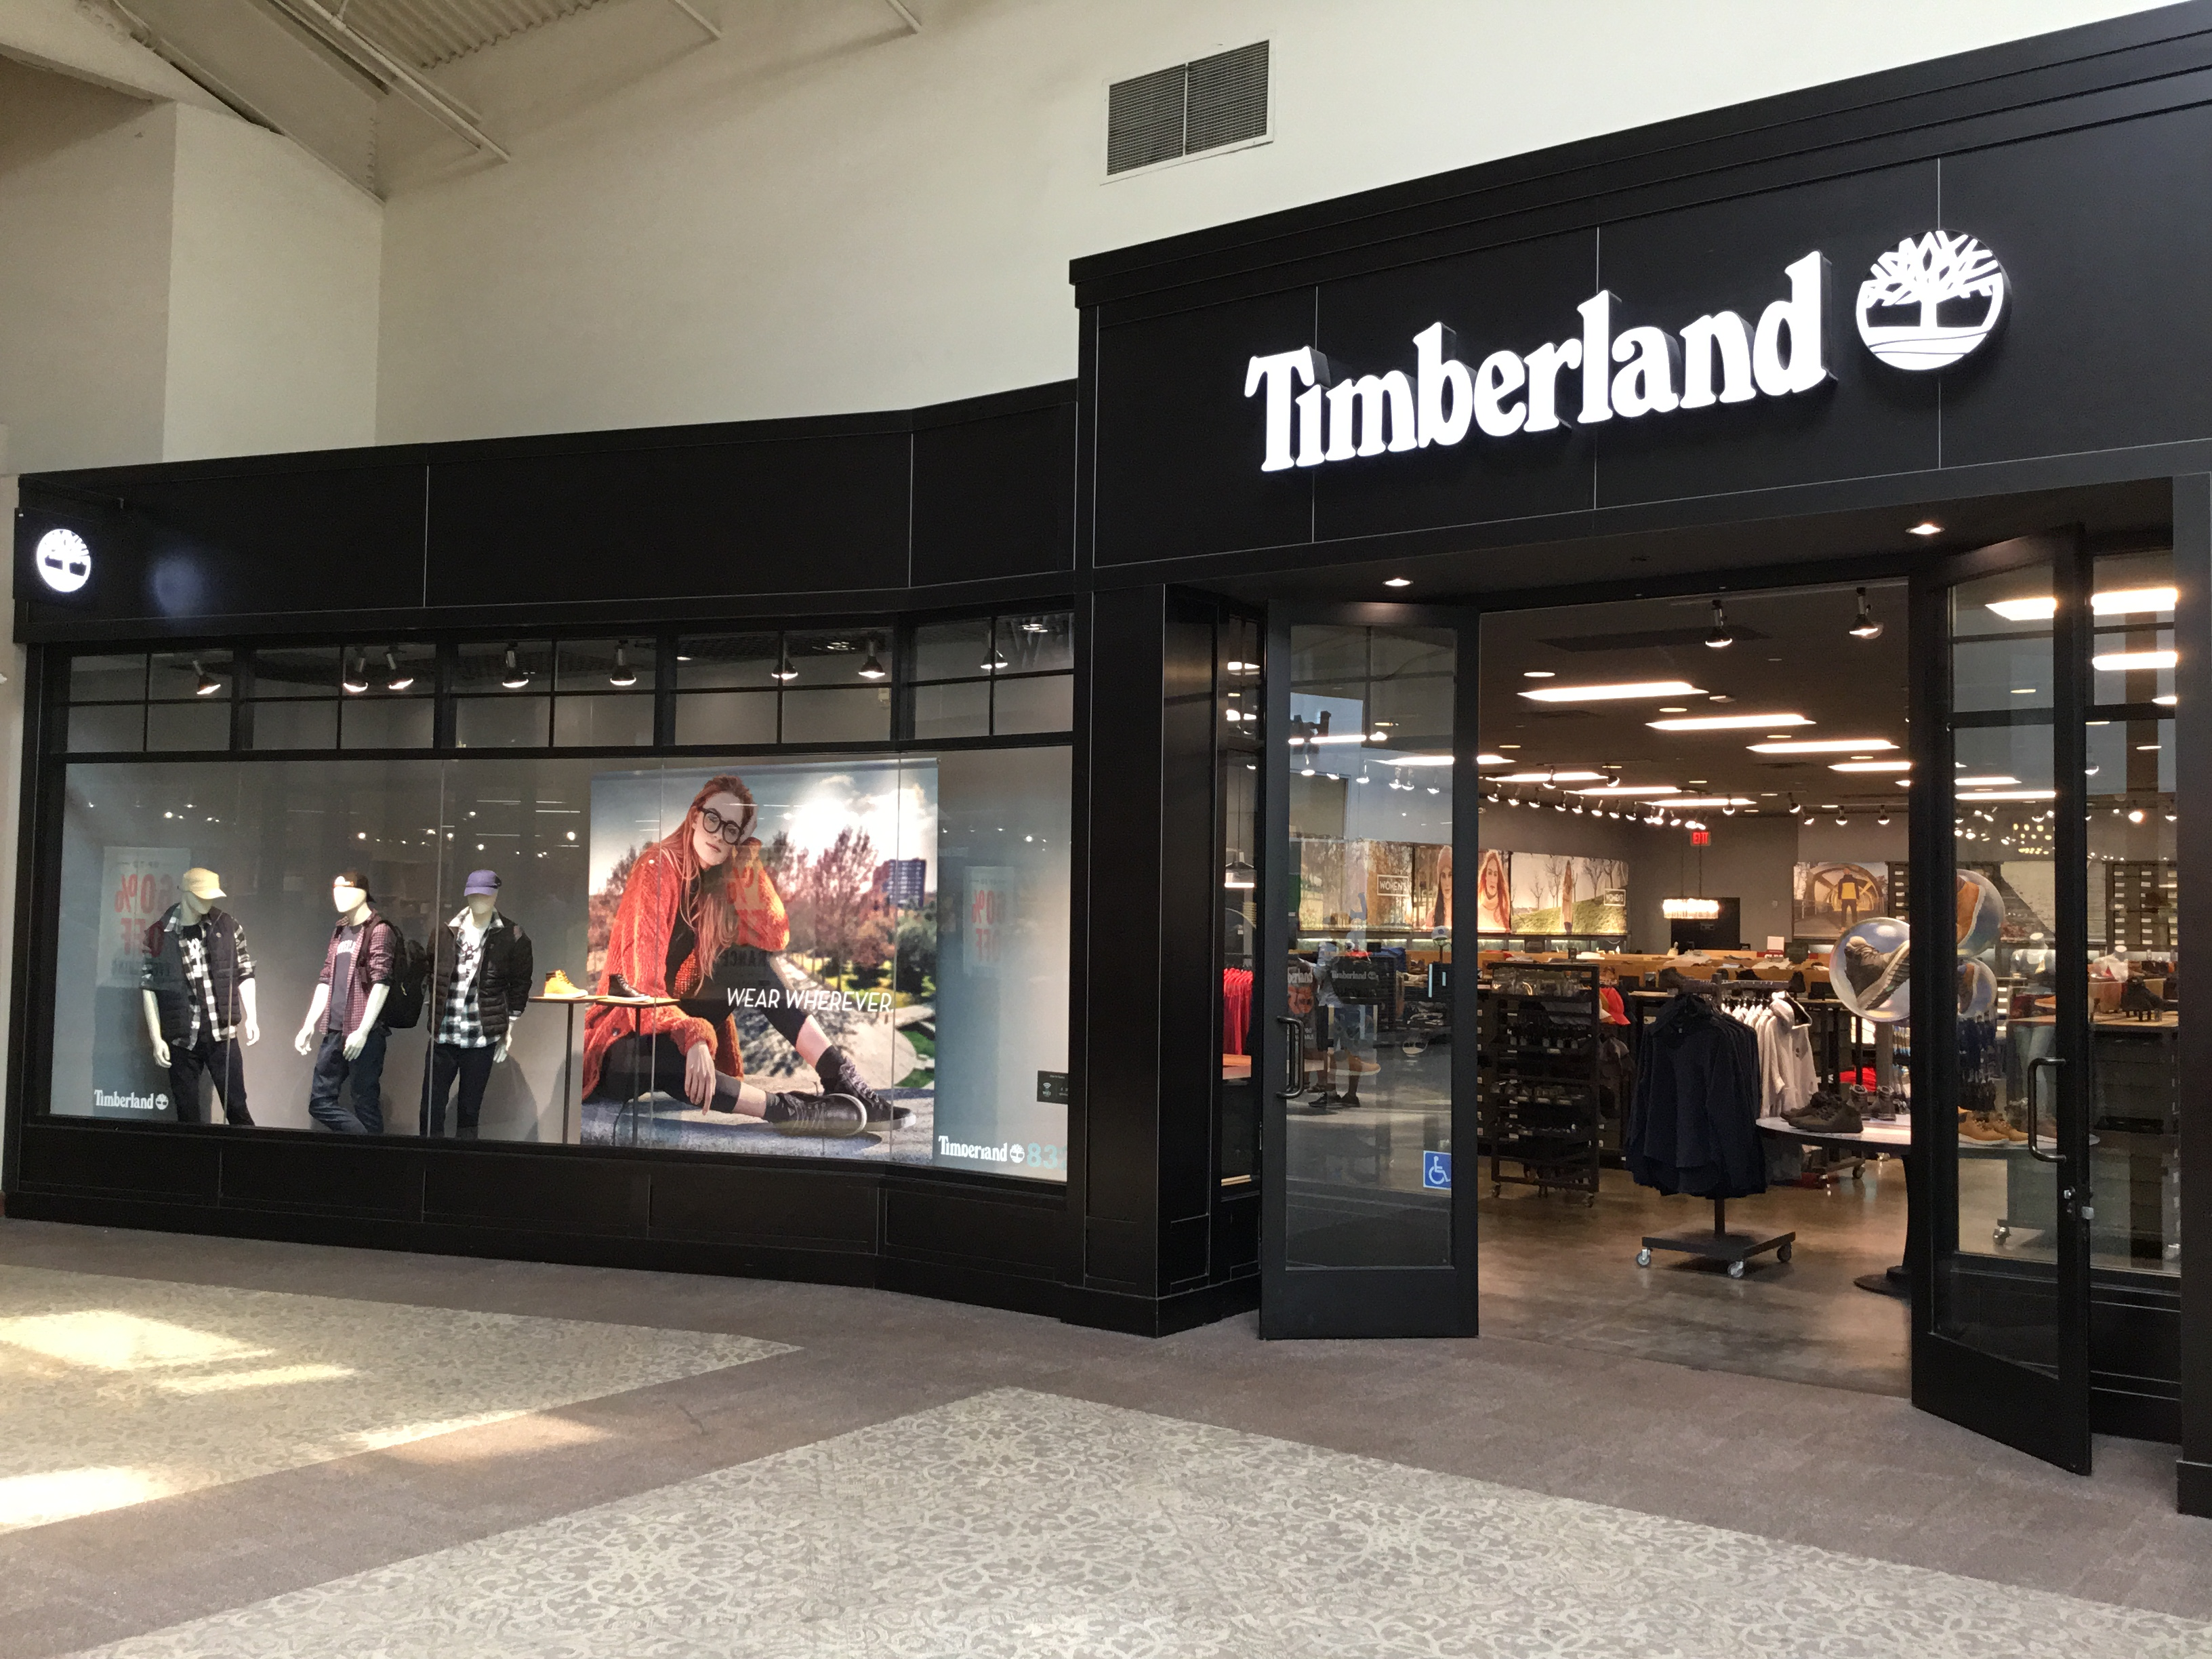 Timberland Boots, Shoes, Clothing & Accessories in Ontario, CA